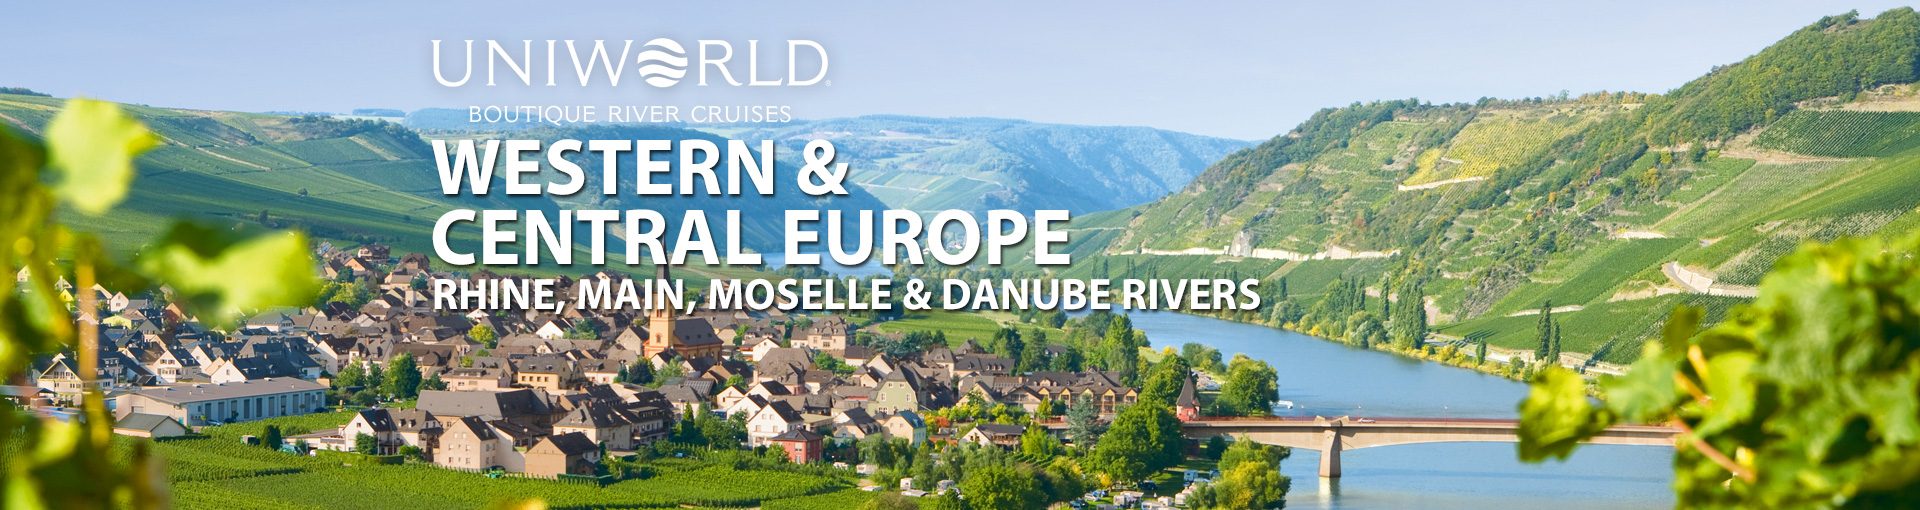 Uniworld River Cruises to Western and Central Europe